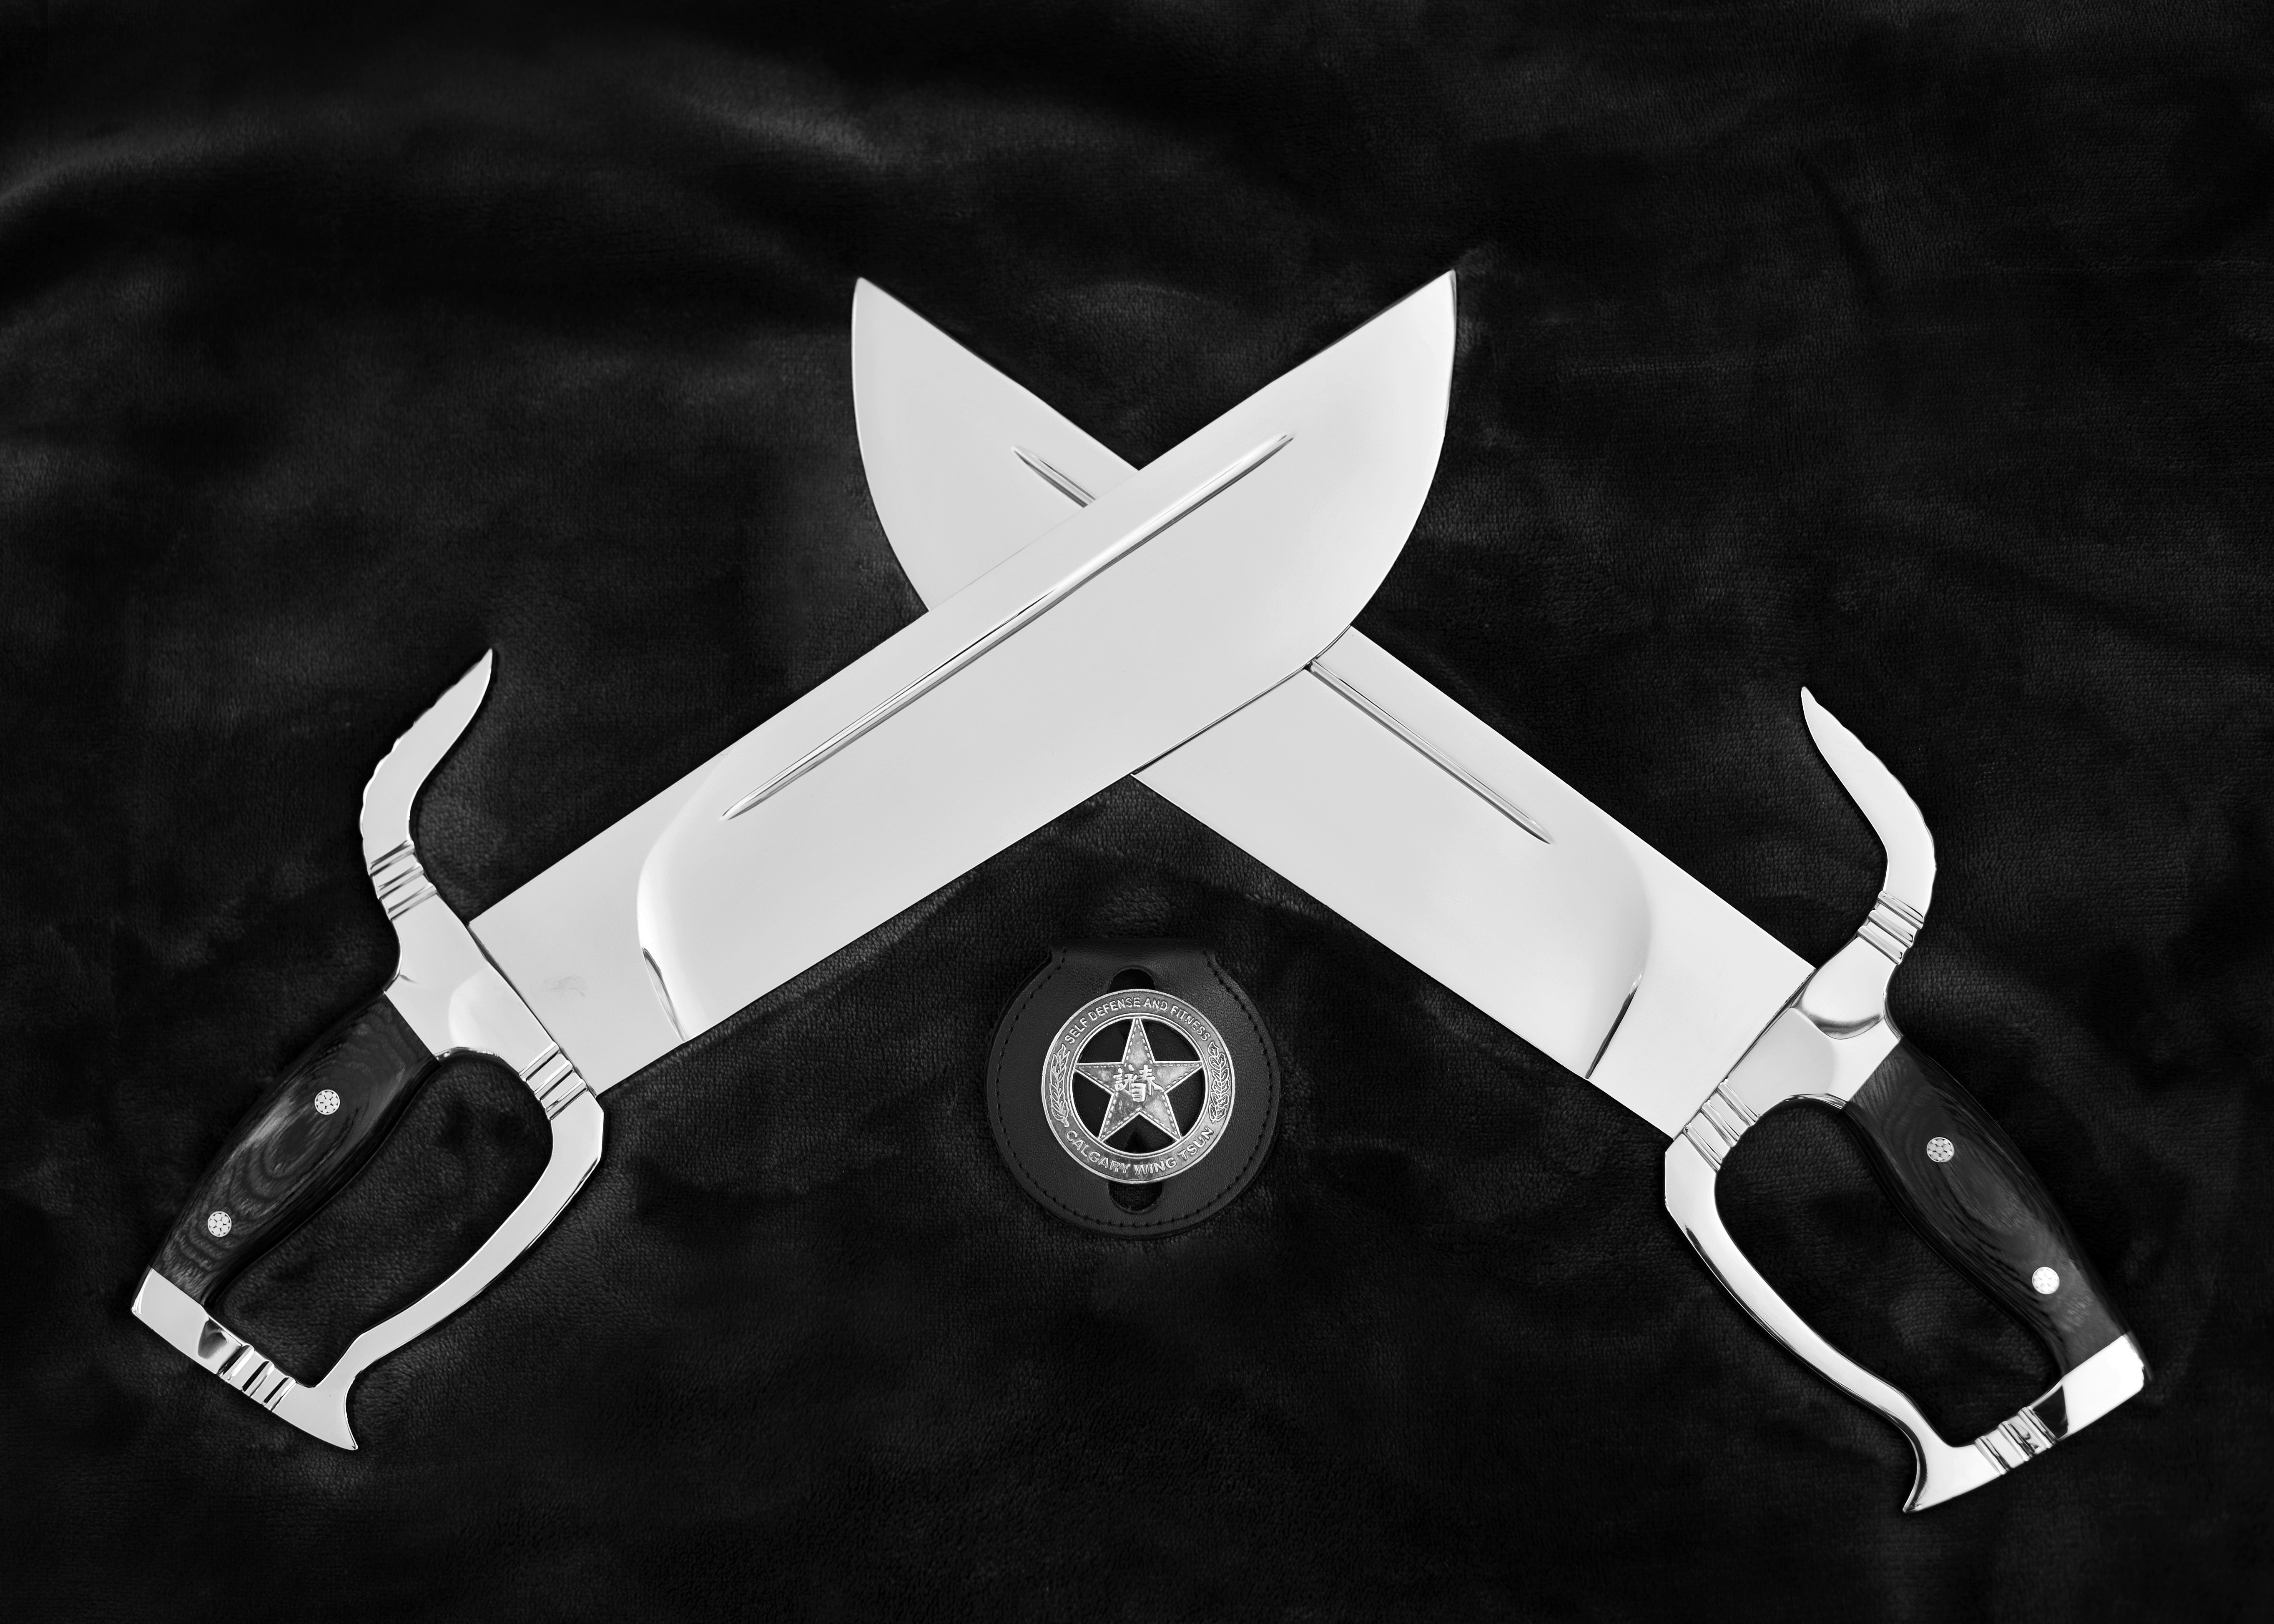 Butterfly Swords Archives - Everything Wing Chun ® Blog